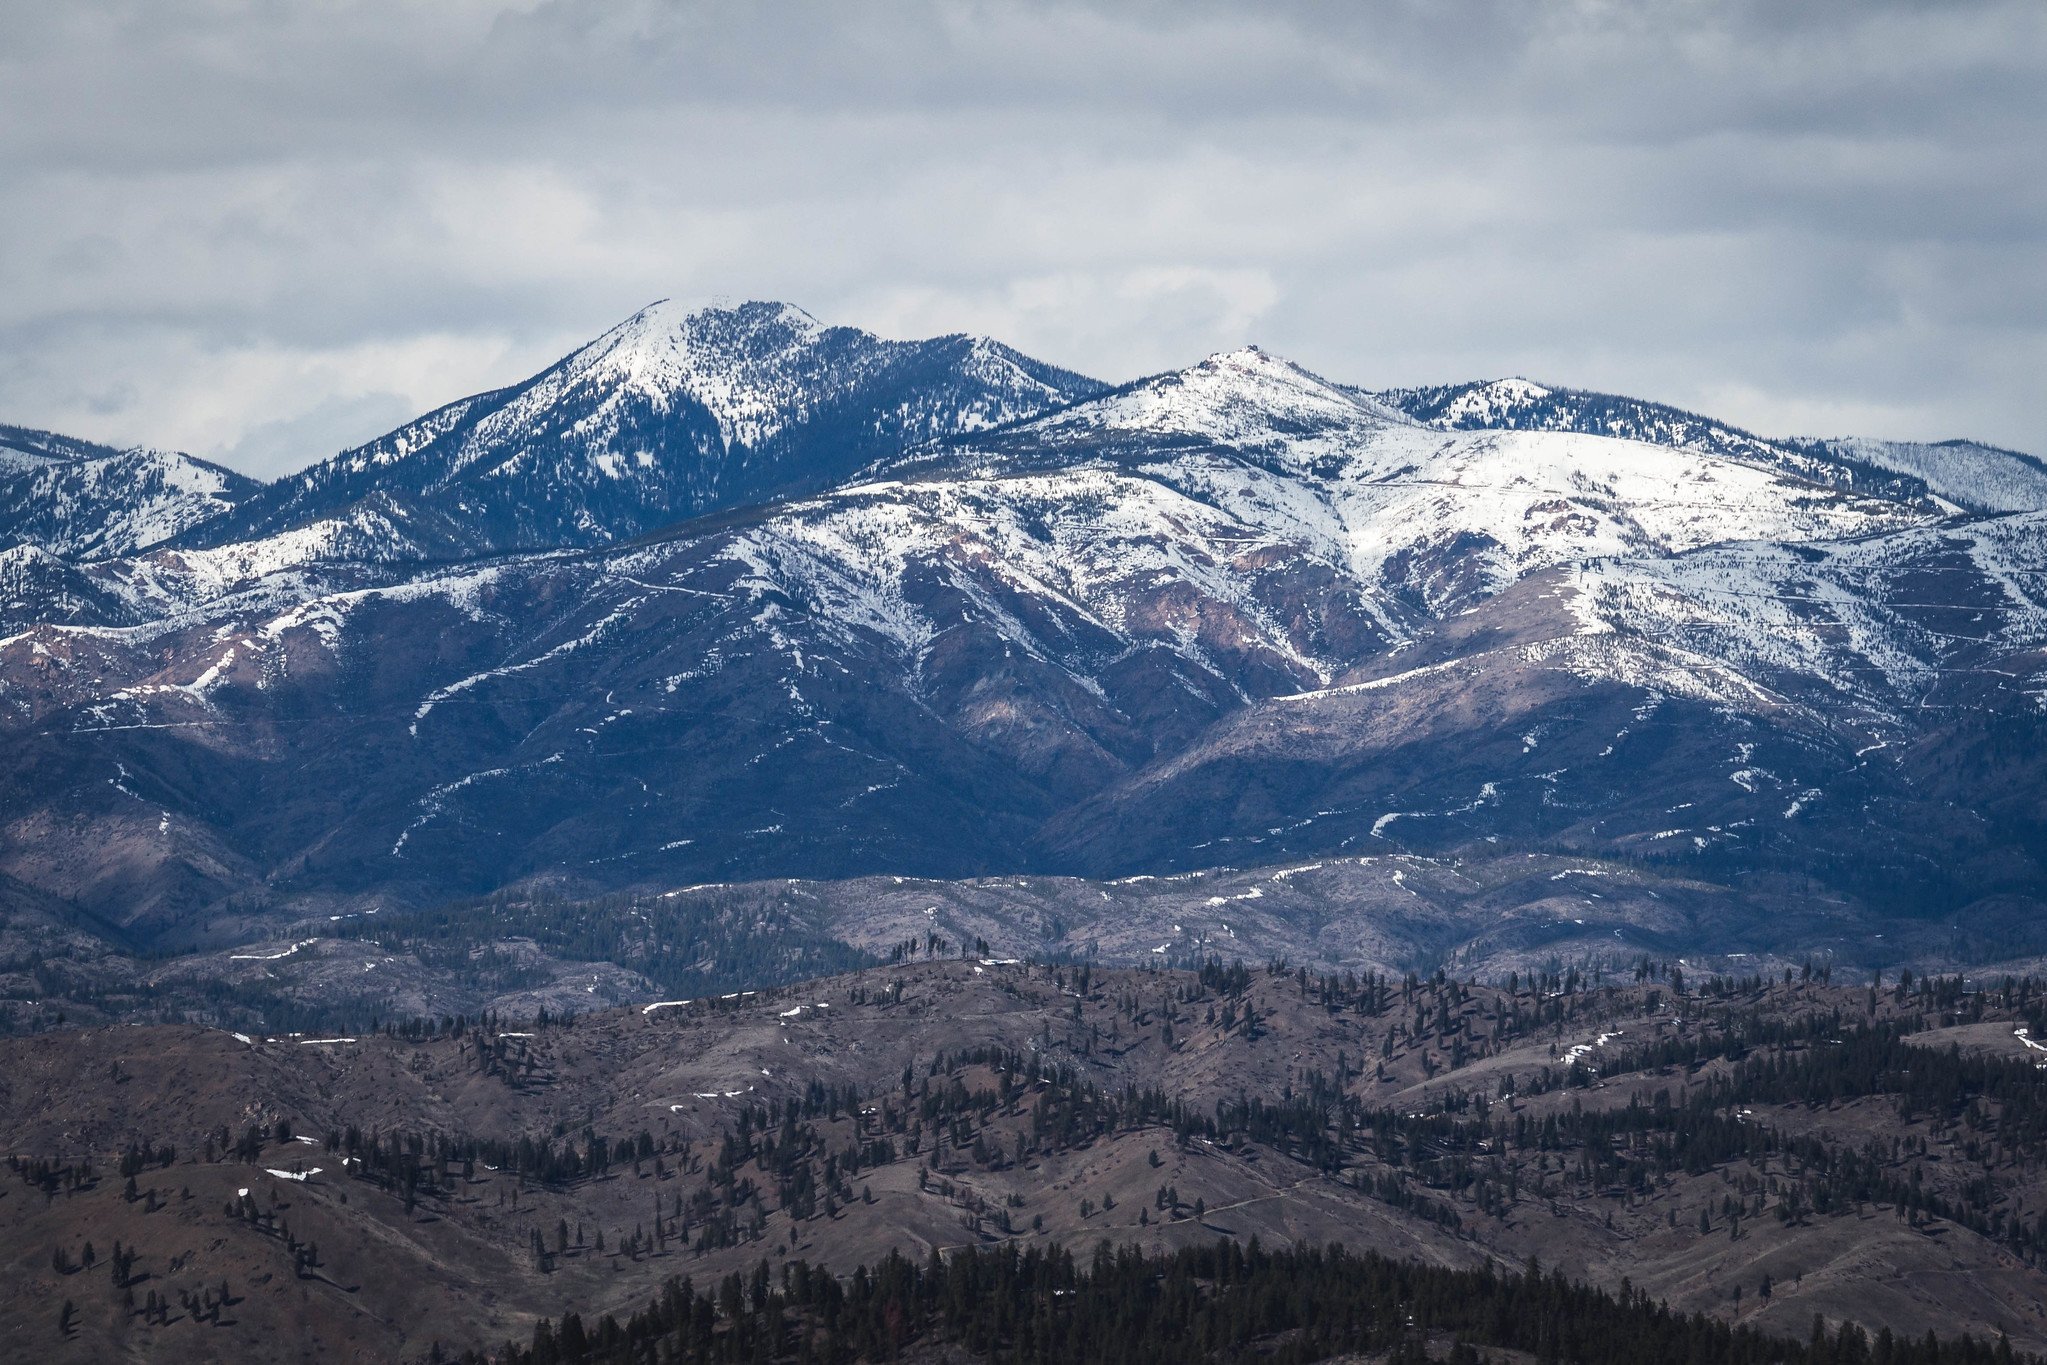 Stormy Mountain and Baldy Mountain